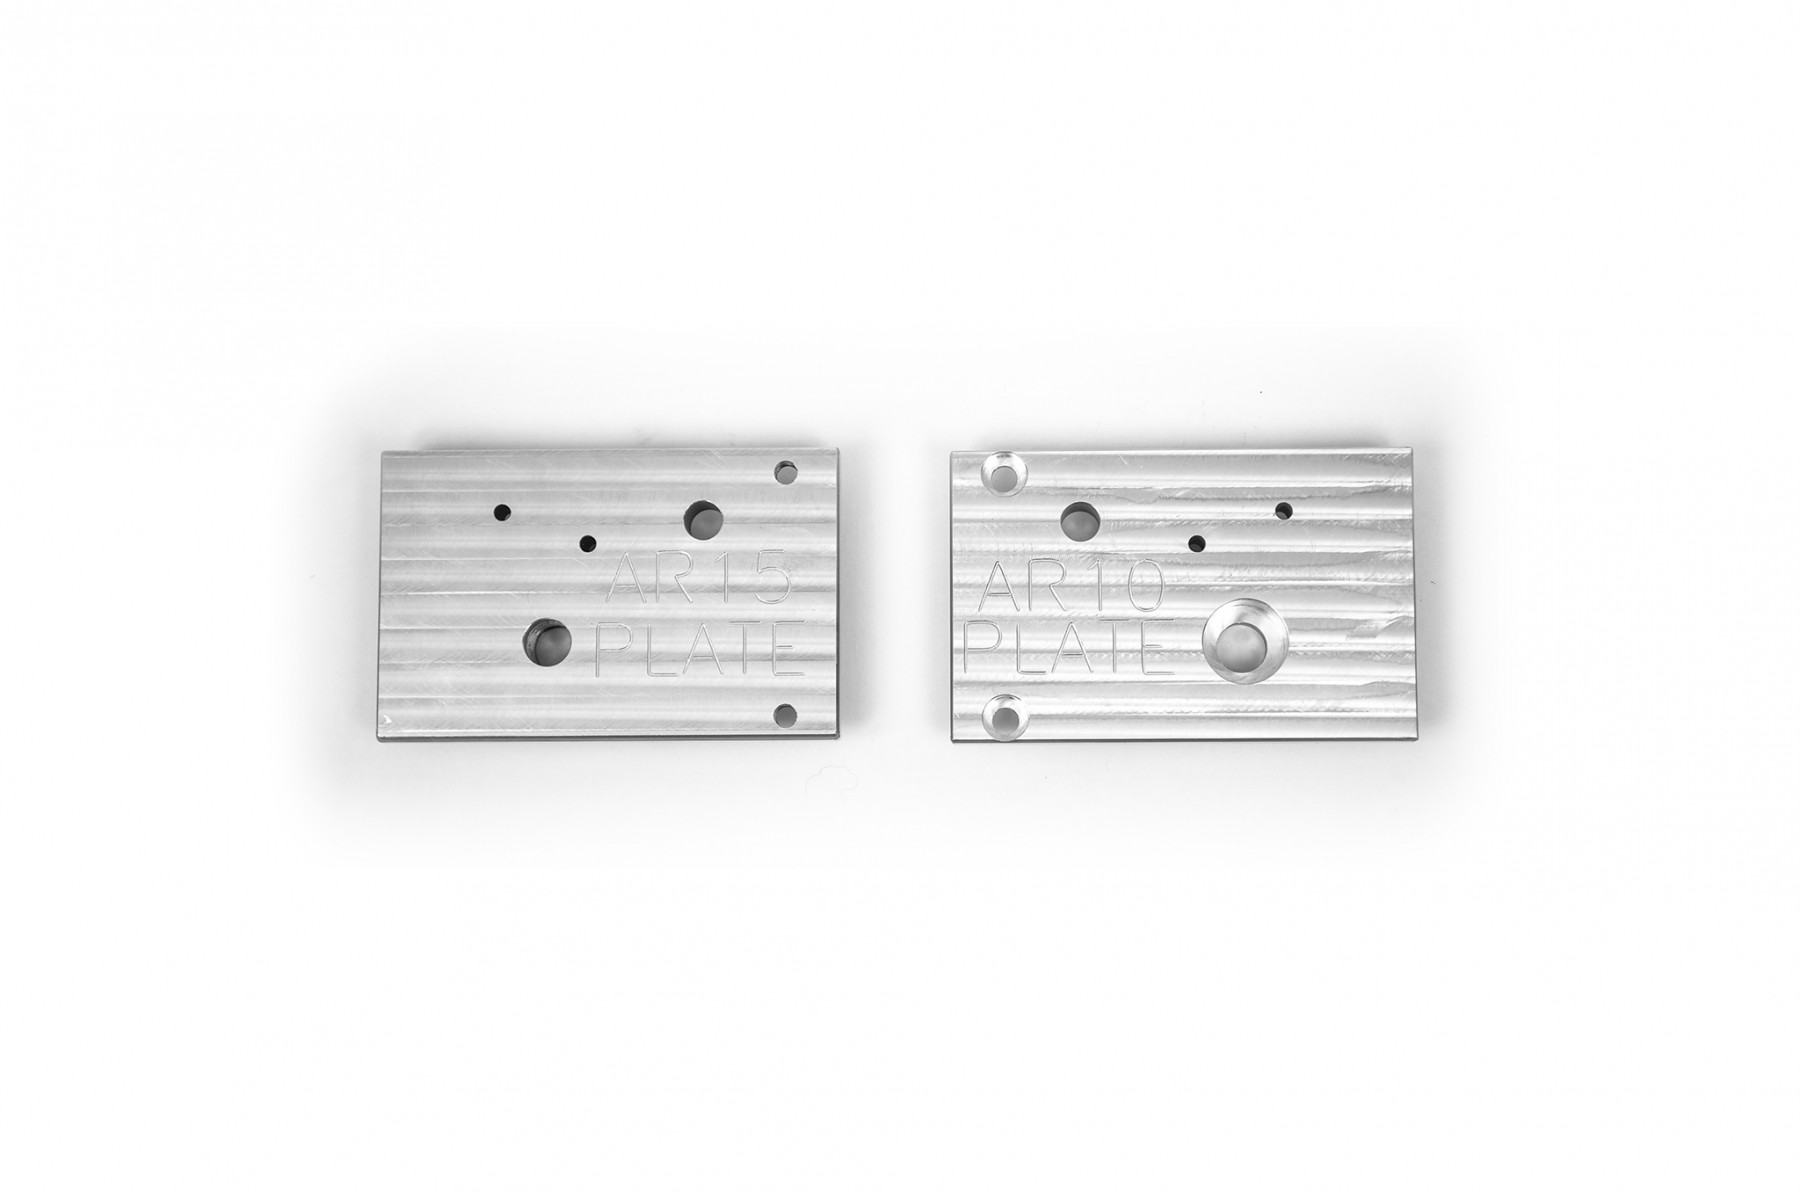 Universal Milling Jig Side Plates